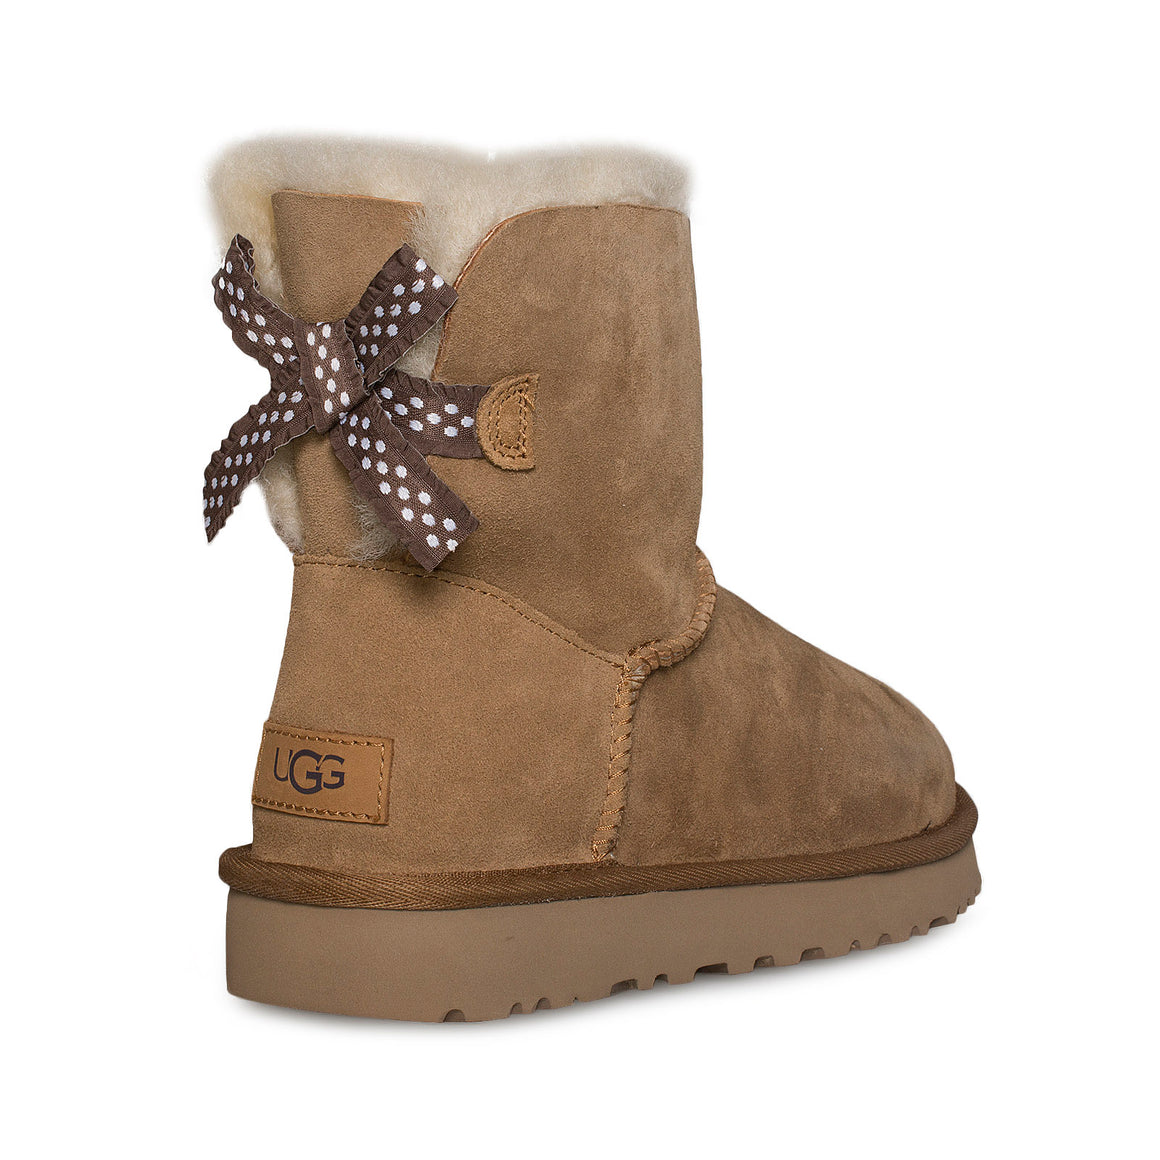 UGG Mini Bailey Bow II Ruffled Chestnut Boots - Women's